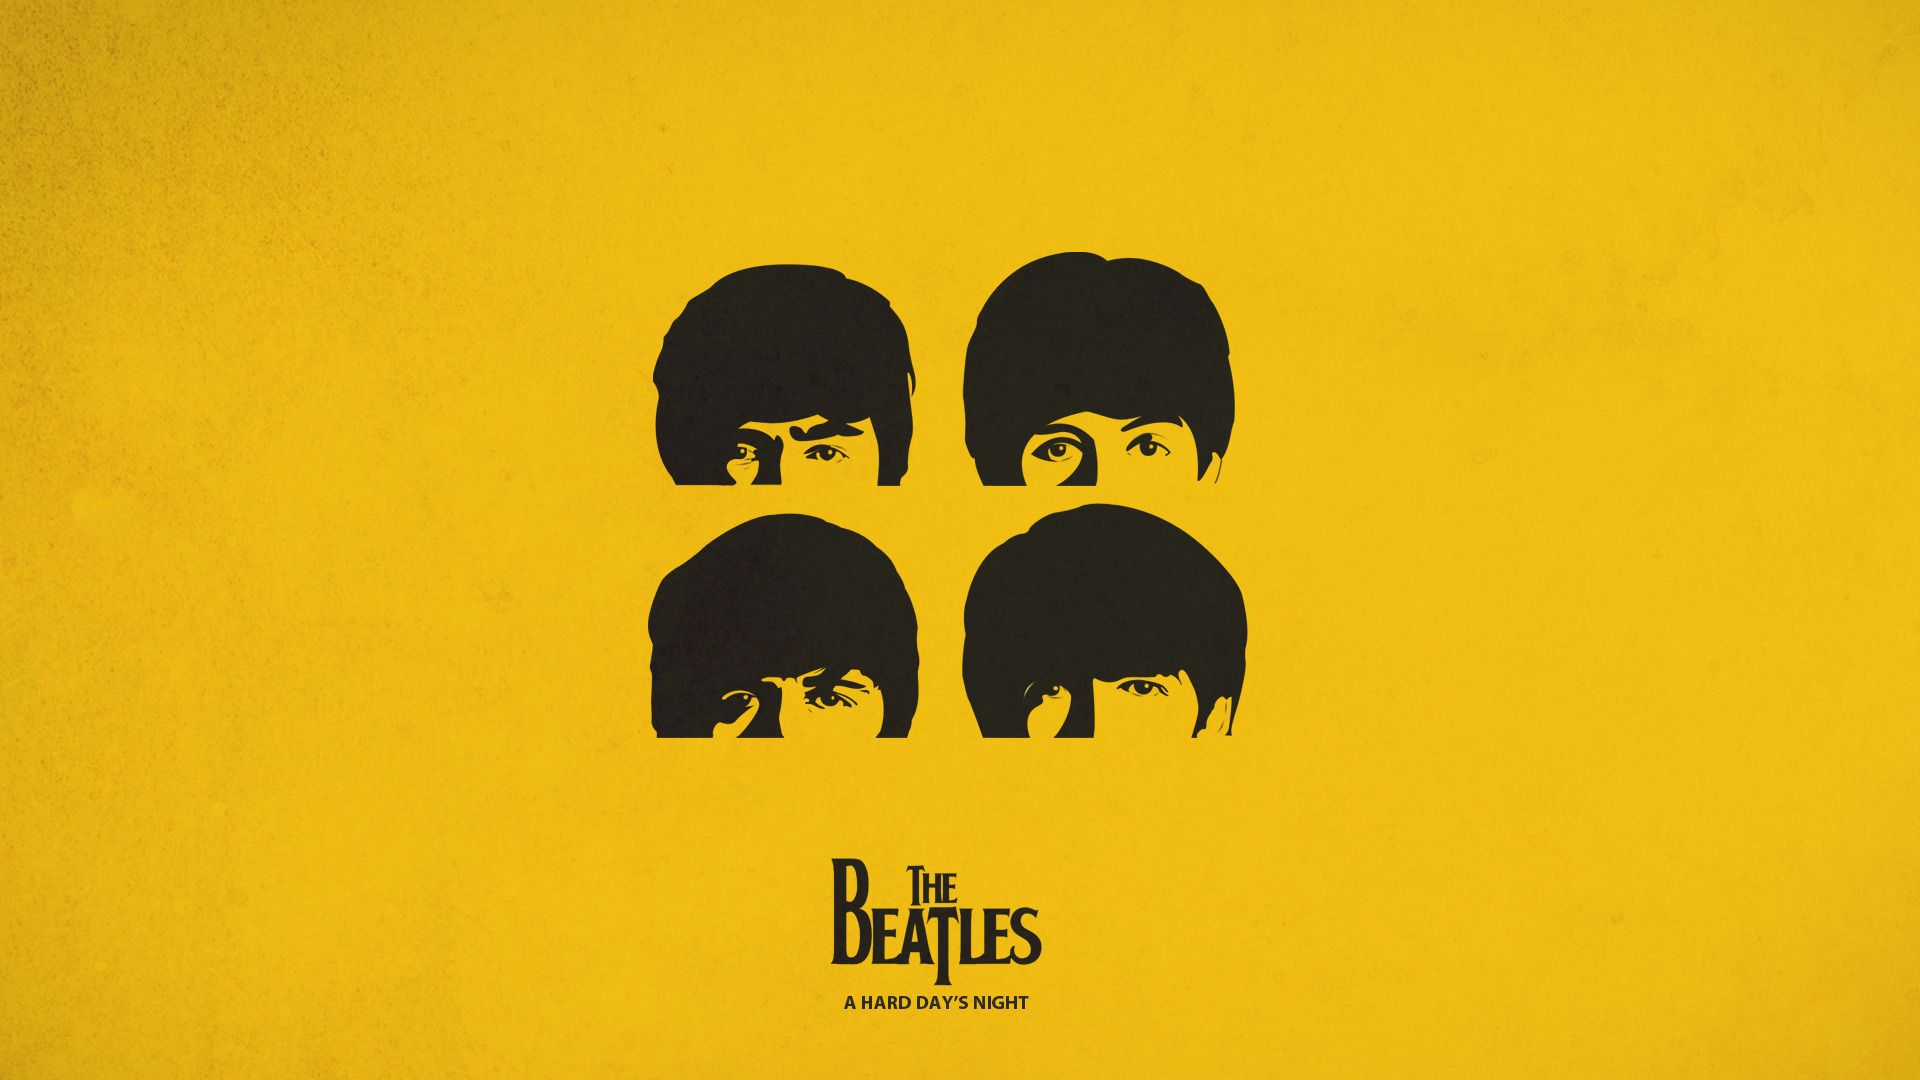 The Beatles Wallpapers   Top The Beatles Backgrounds 1920x1080